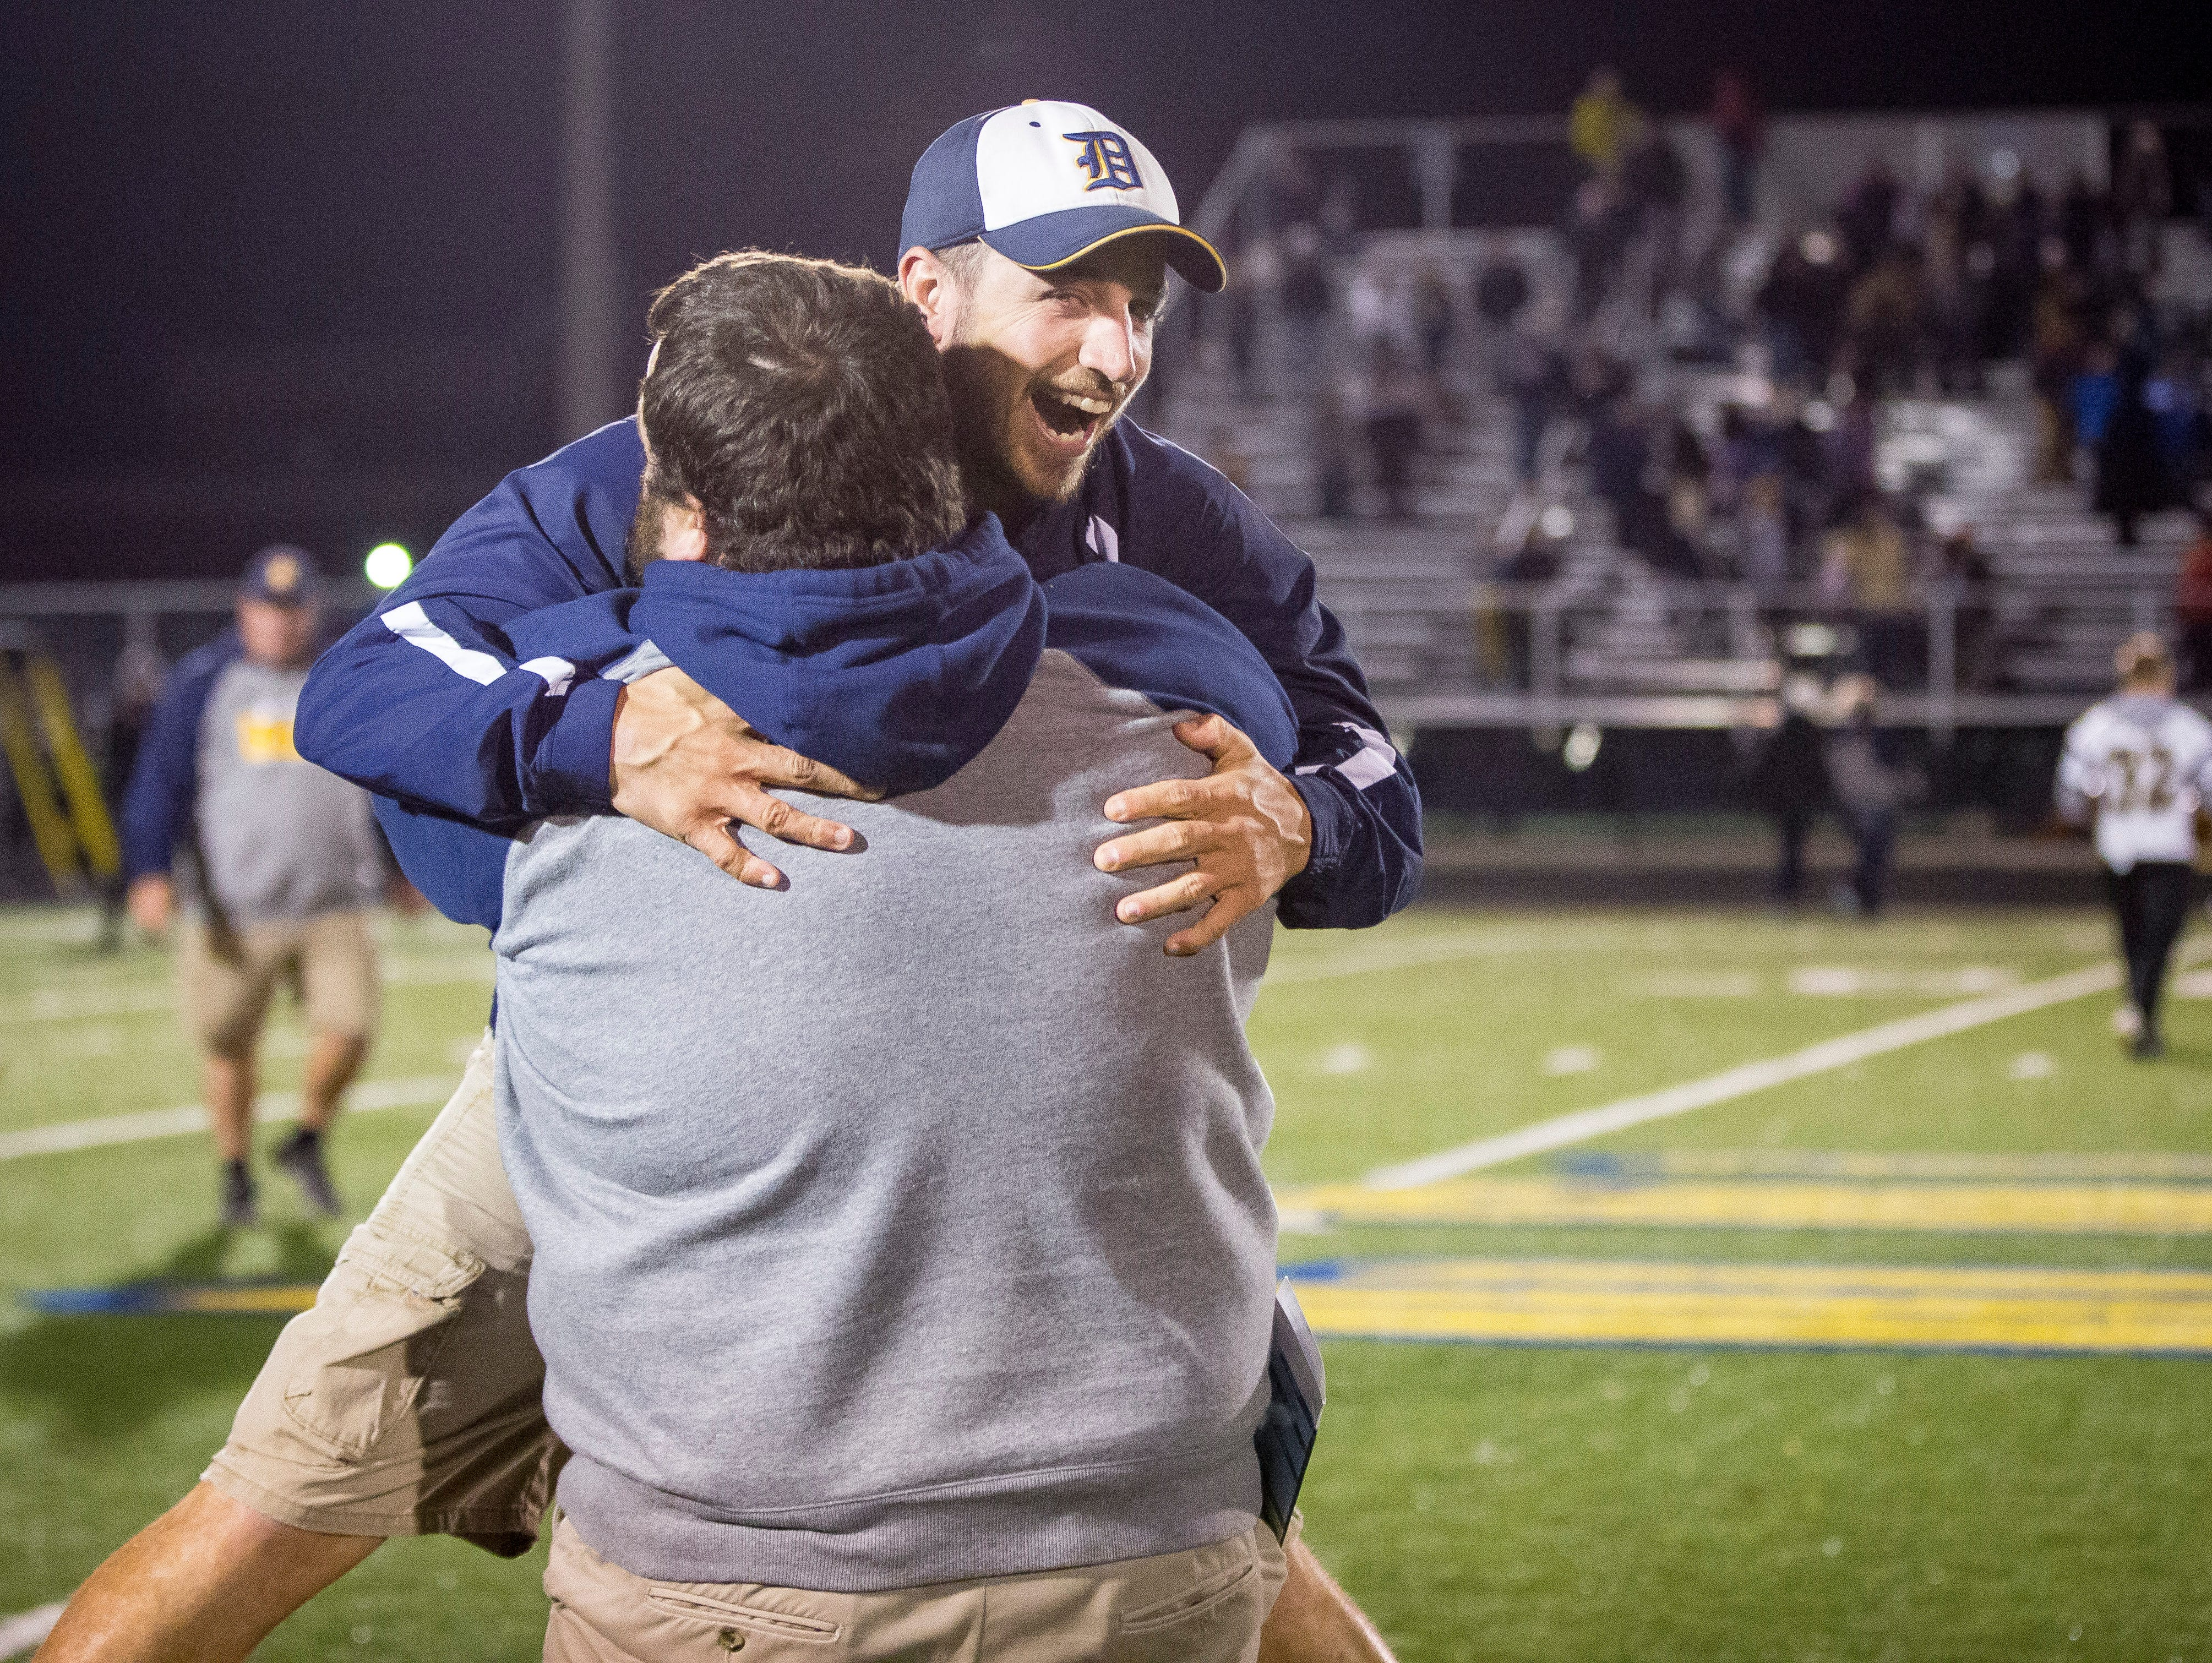 Two of Delta's assistant coaches embrace after a close victory against Mt. Vernon Friday night at Delta High School. Delta won the game 12-6.